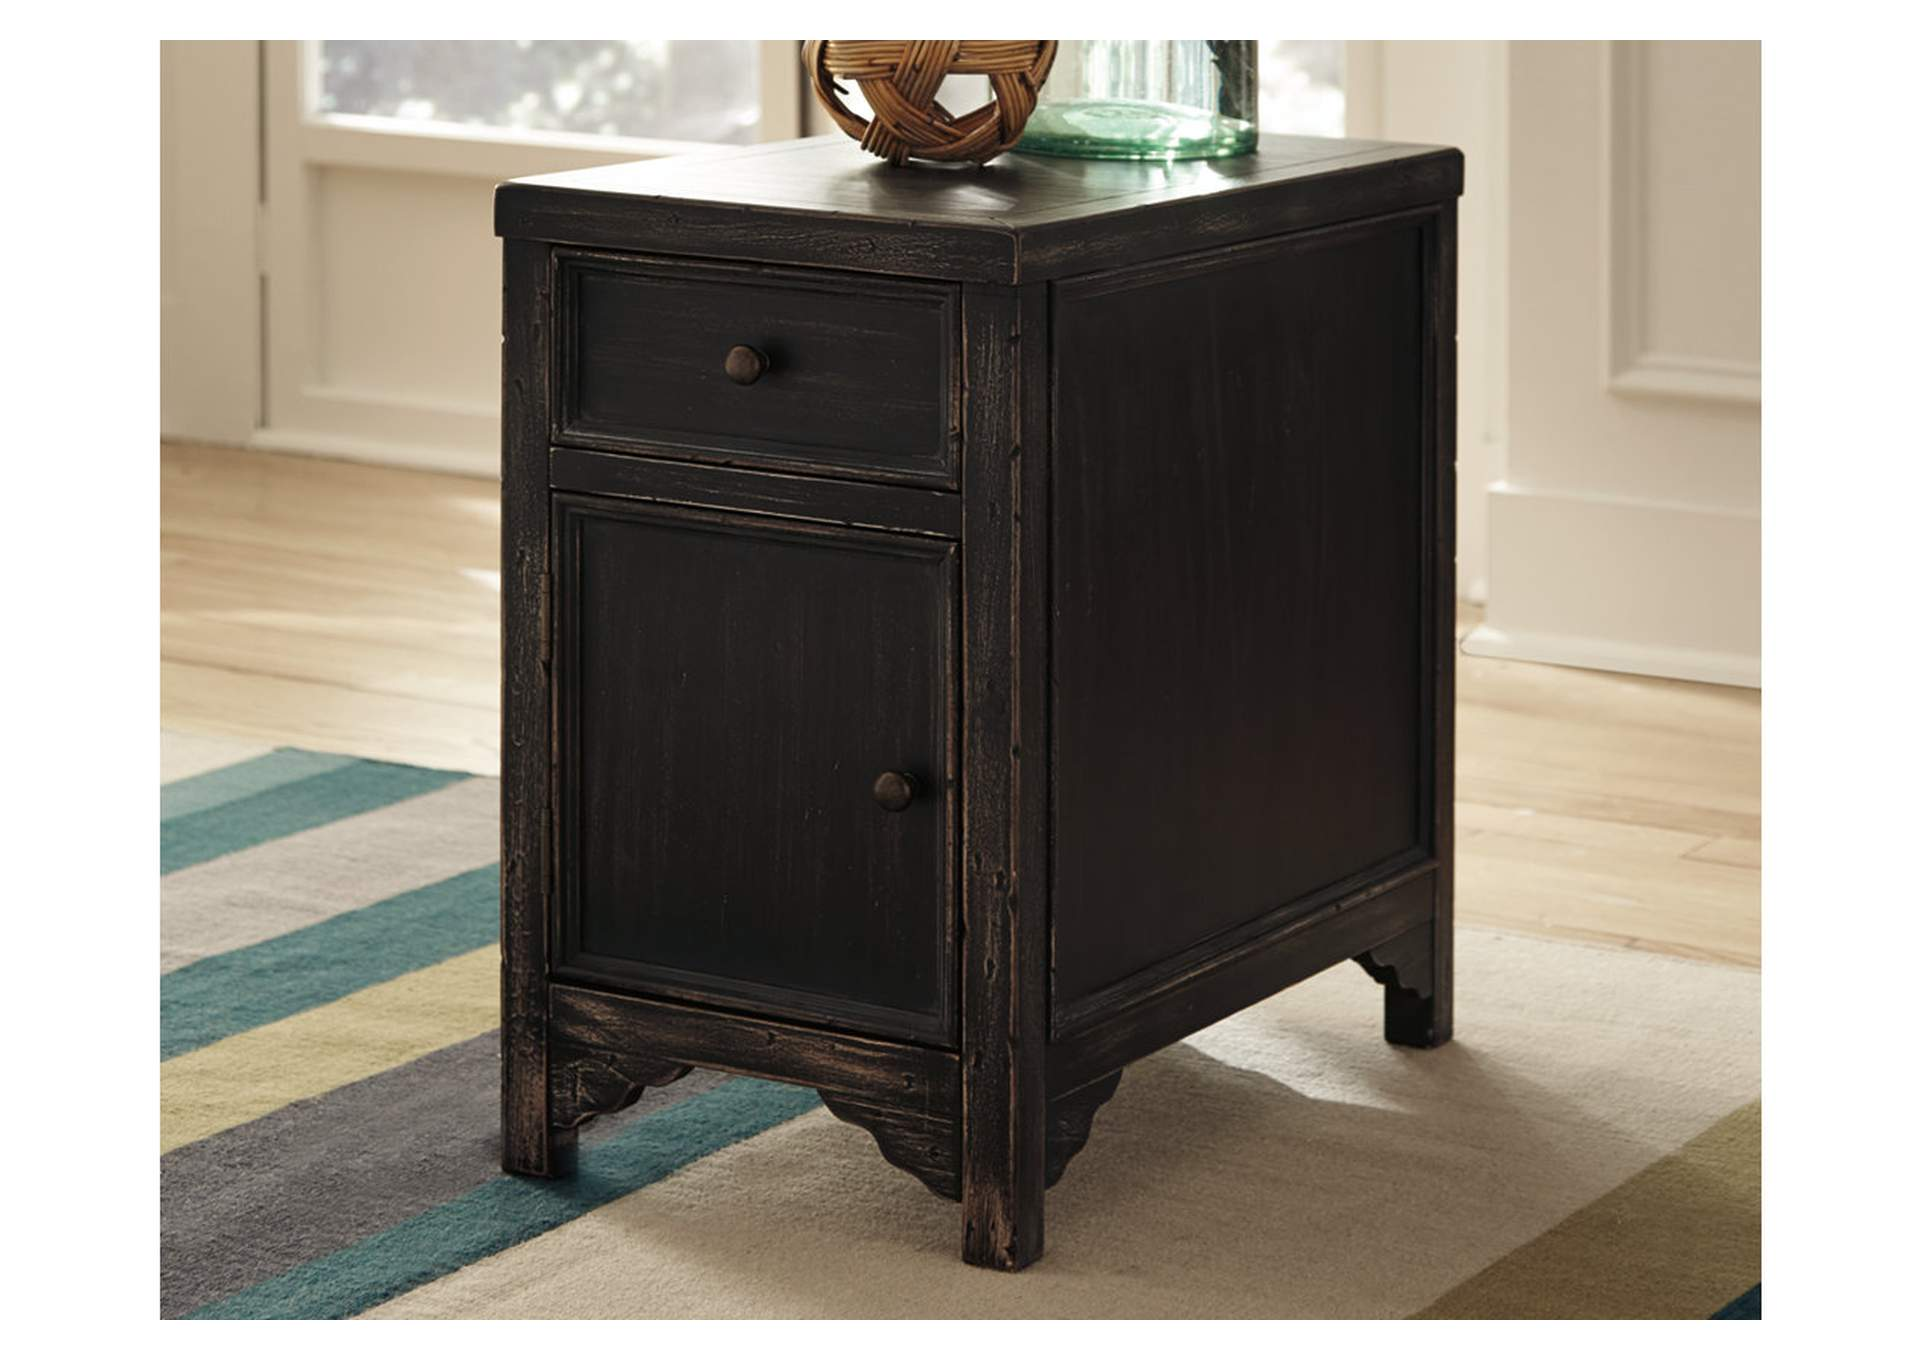 Gavelston Black Chairside End Table,Direct To Consumer Express